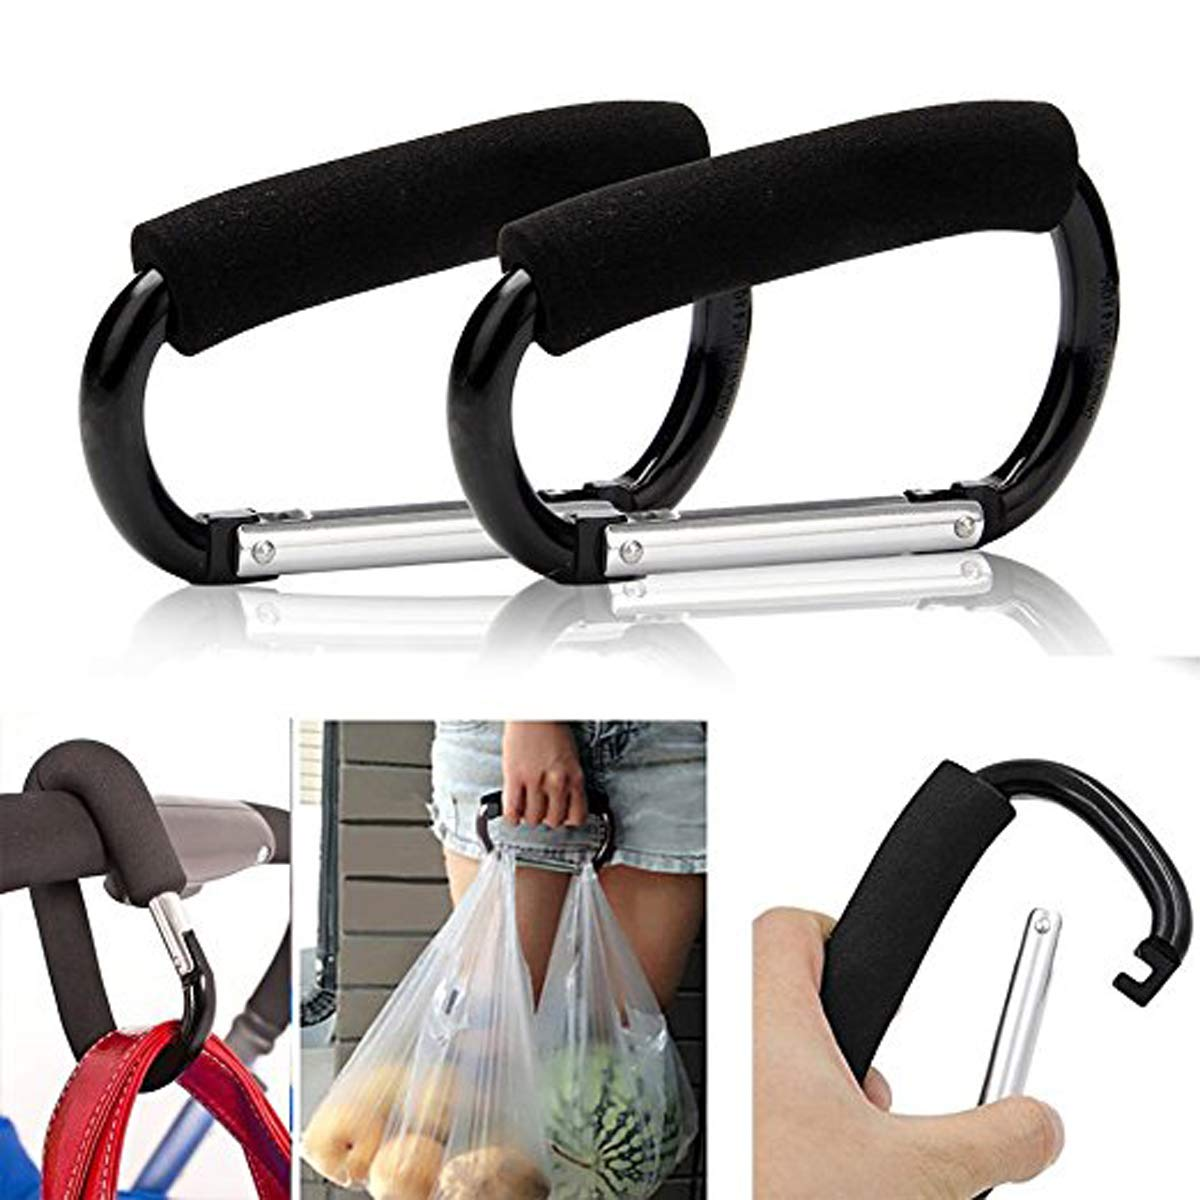 Great Organizer Accessory for Mommy When Jogging Walking or Shopping TECHSON 2x Stroller Hooks Multi Purpose Hanger for Baby Diaper Bags Black